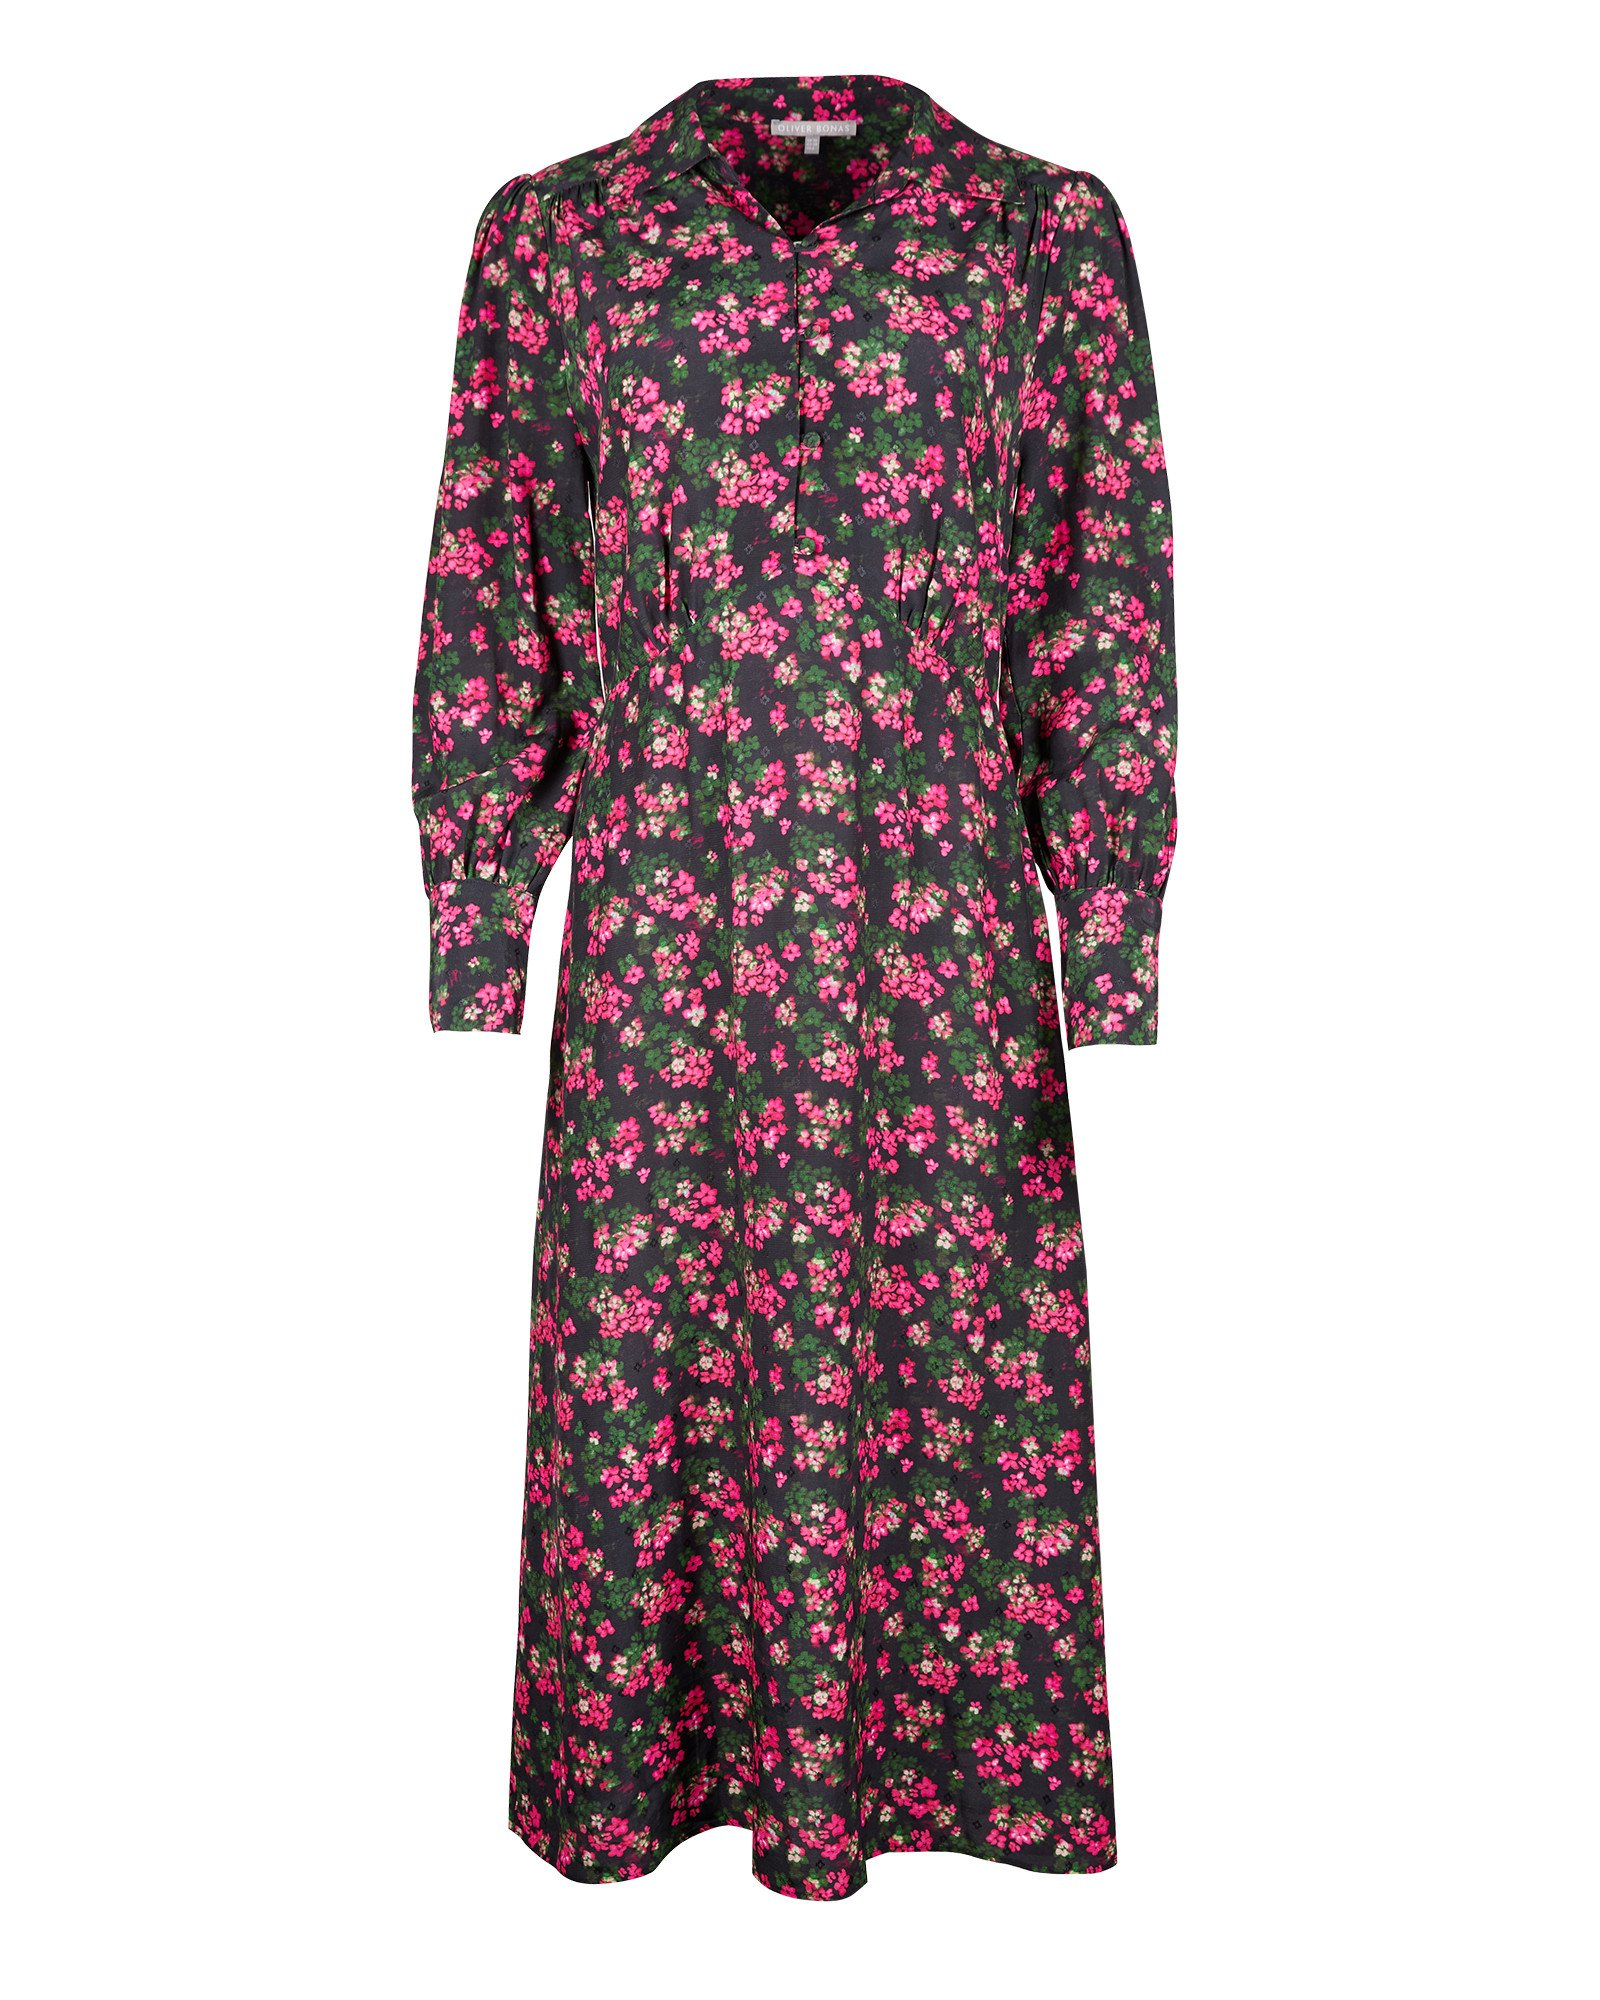 Ditsy Floral Print Pink & Black Midi Shirt Dress